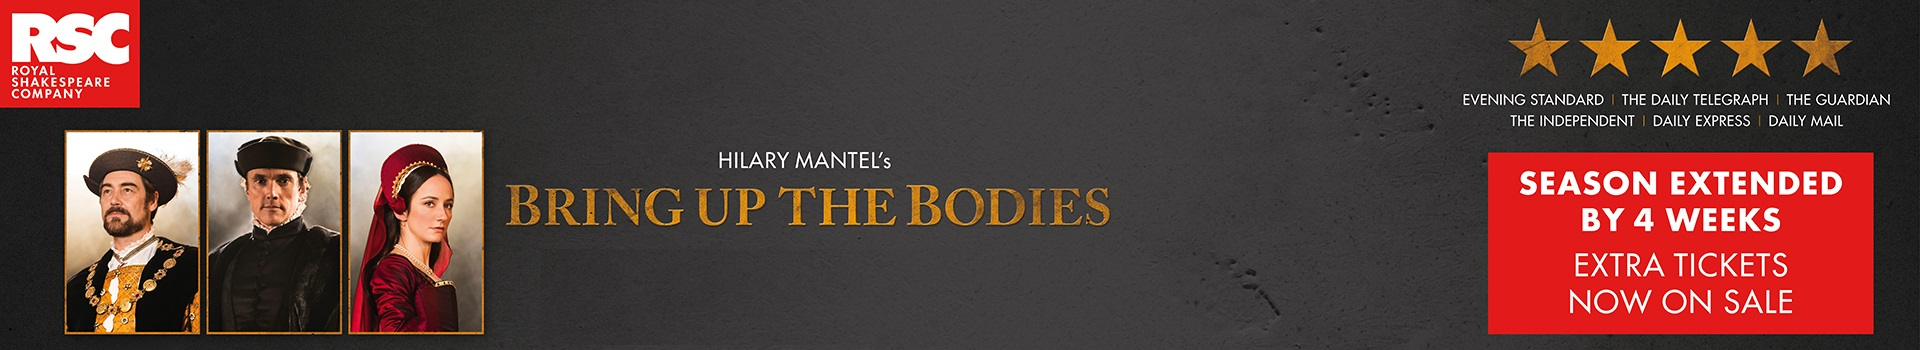 Bring Up The Bodies banner image